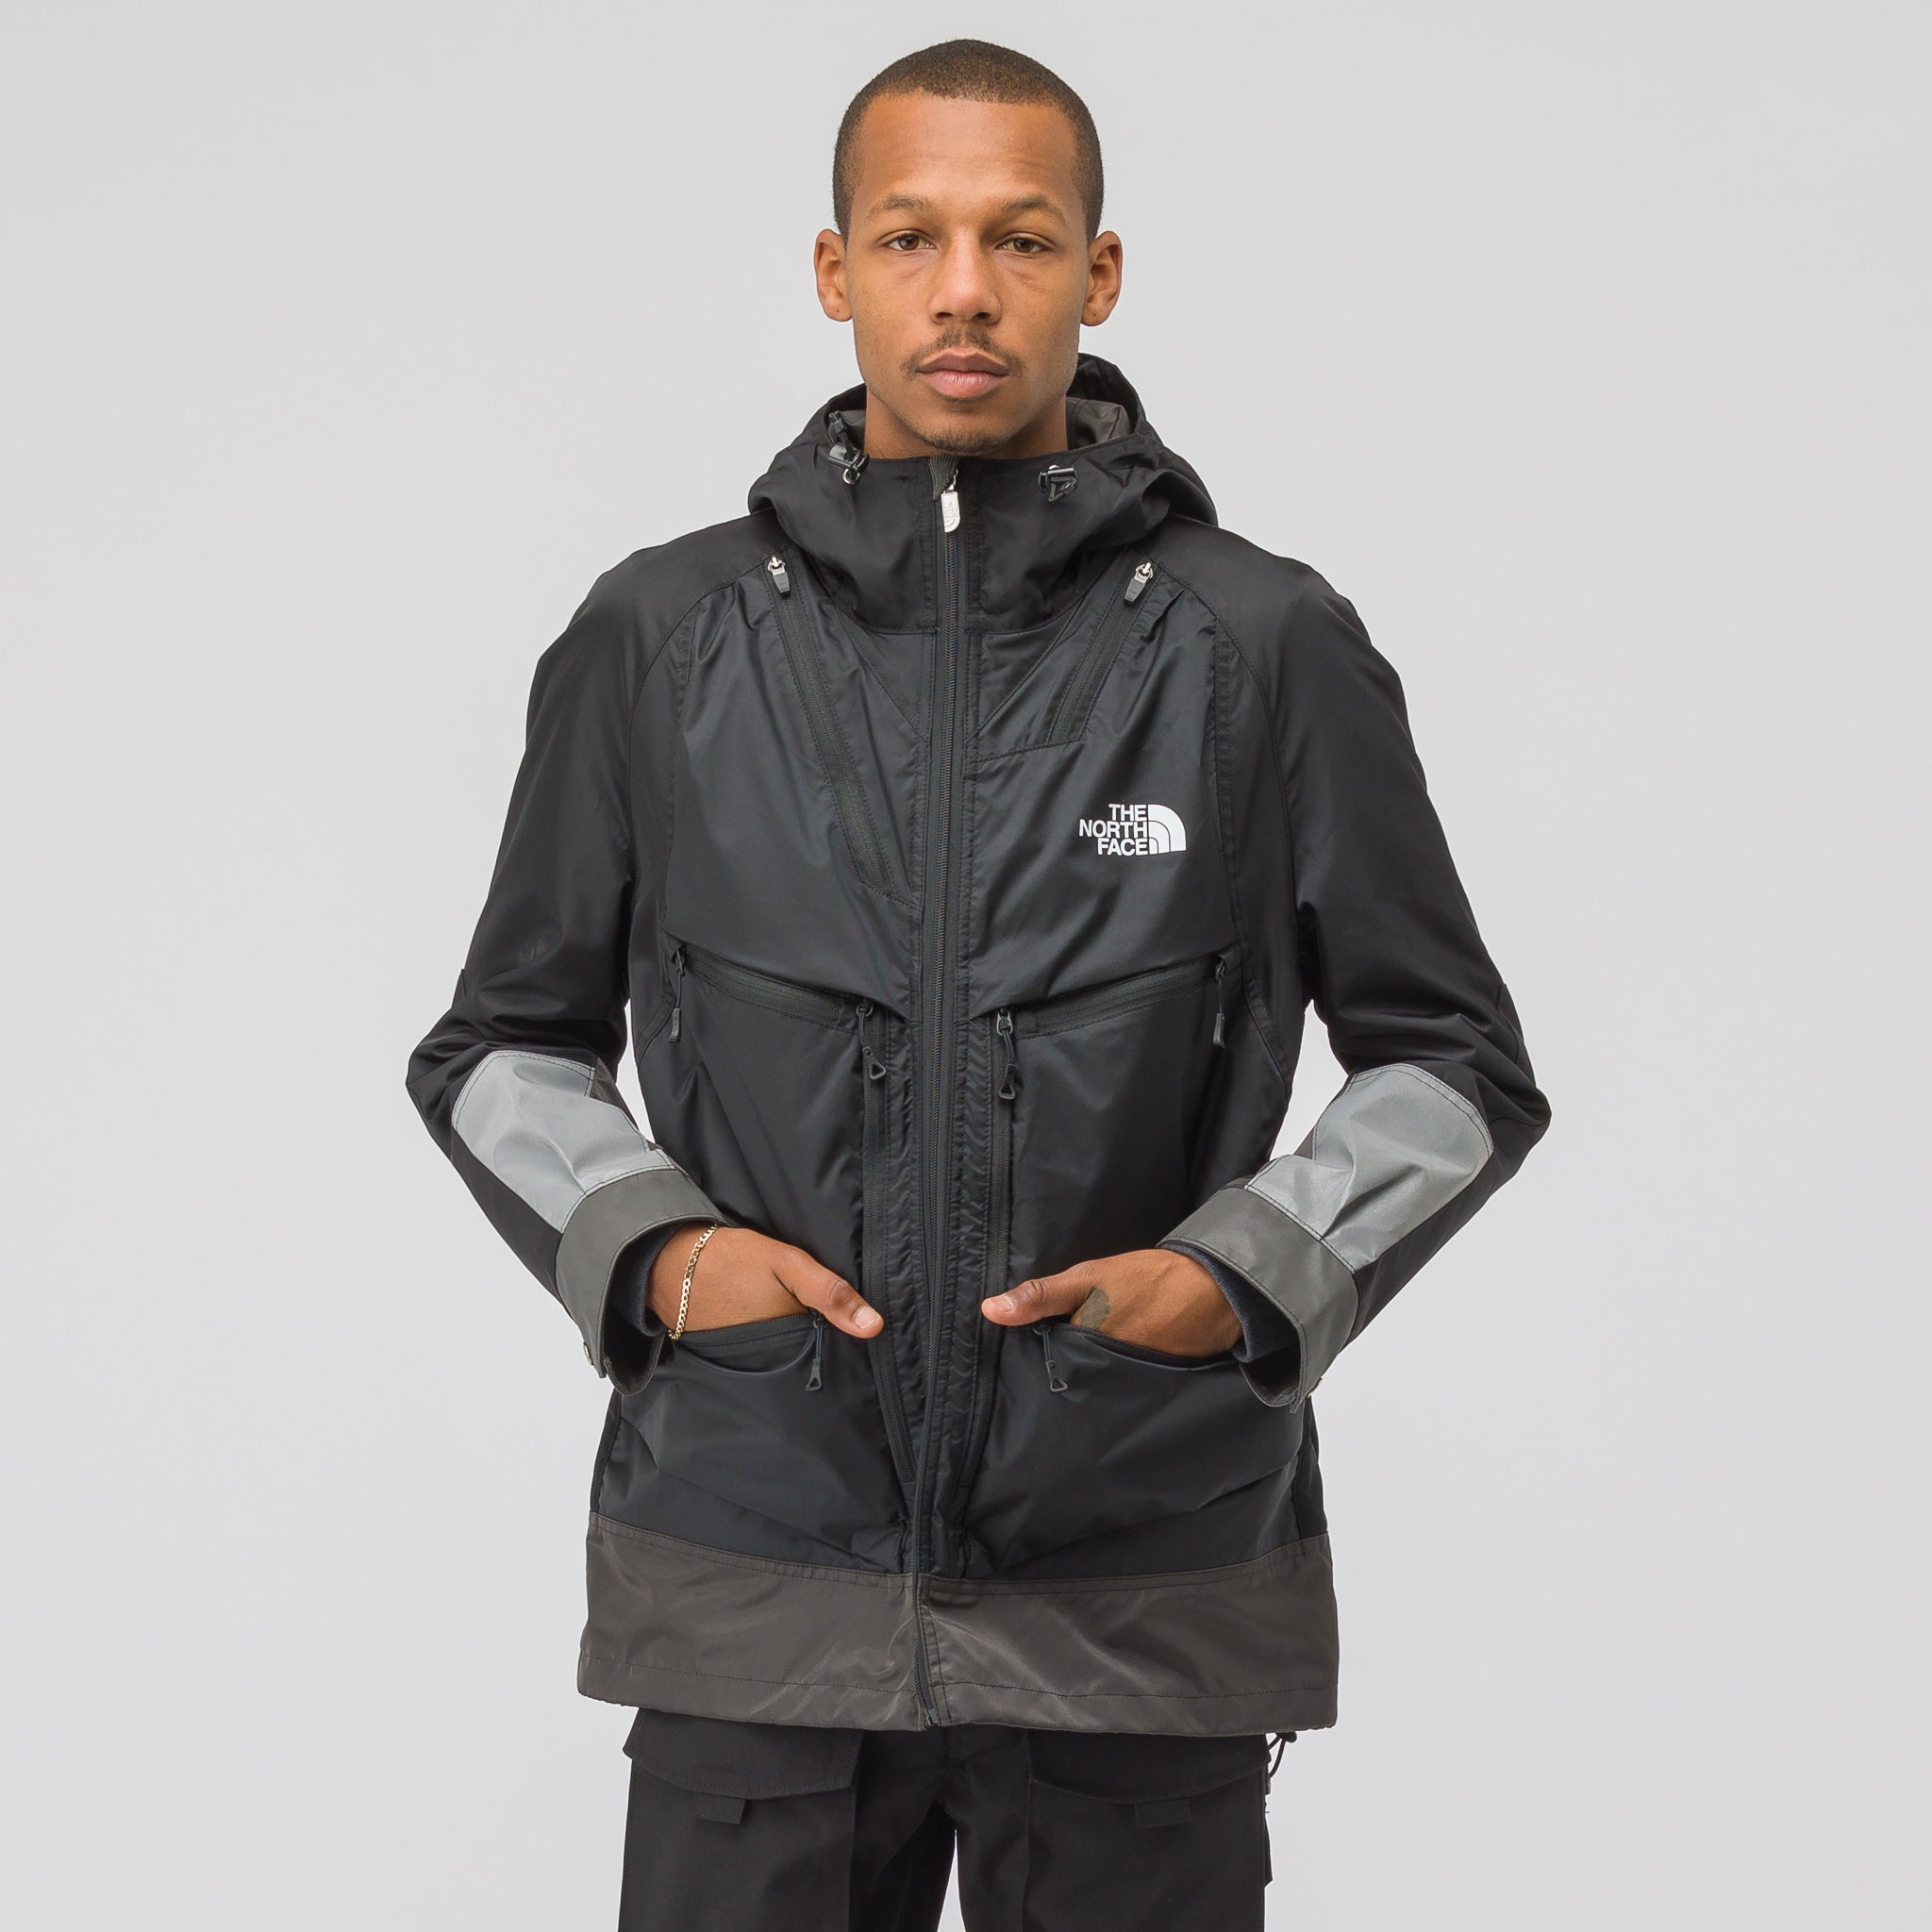 x The North Face Backpack Coat in Black